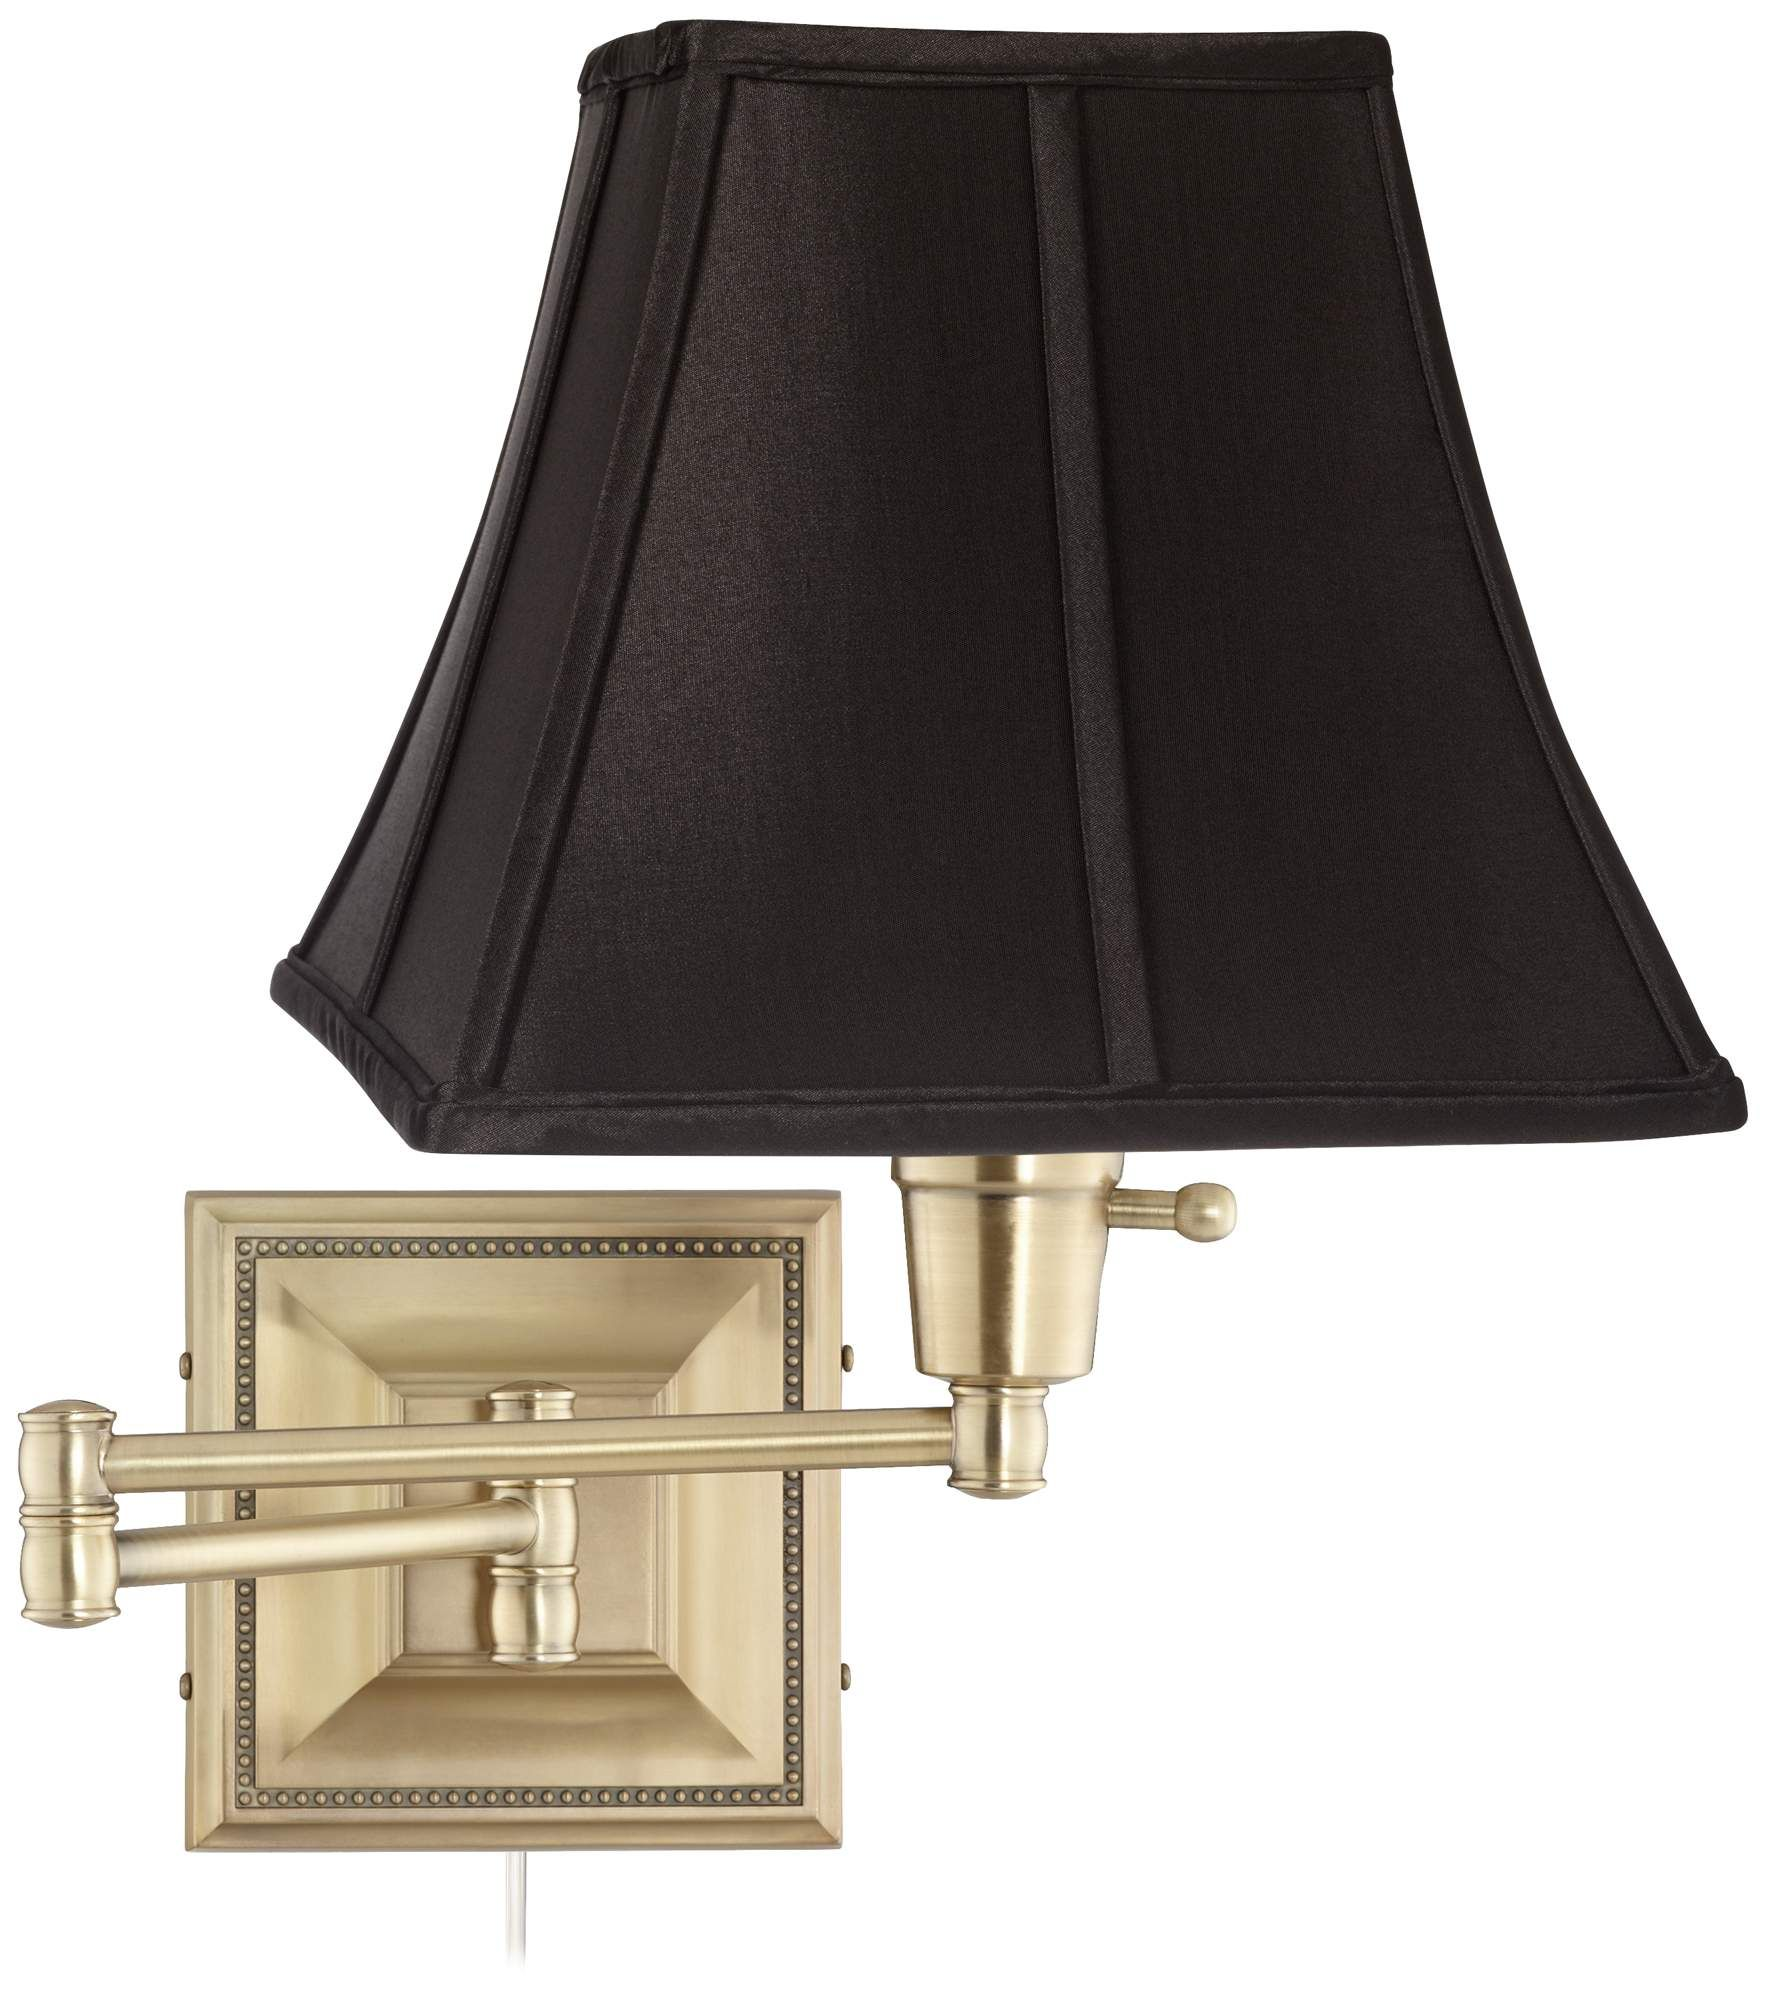 Black Square Shade Brass Beaded Plug In Swing Arm Wall